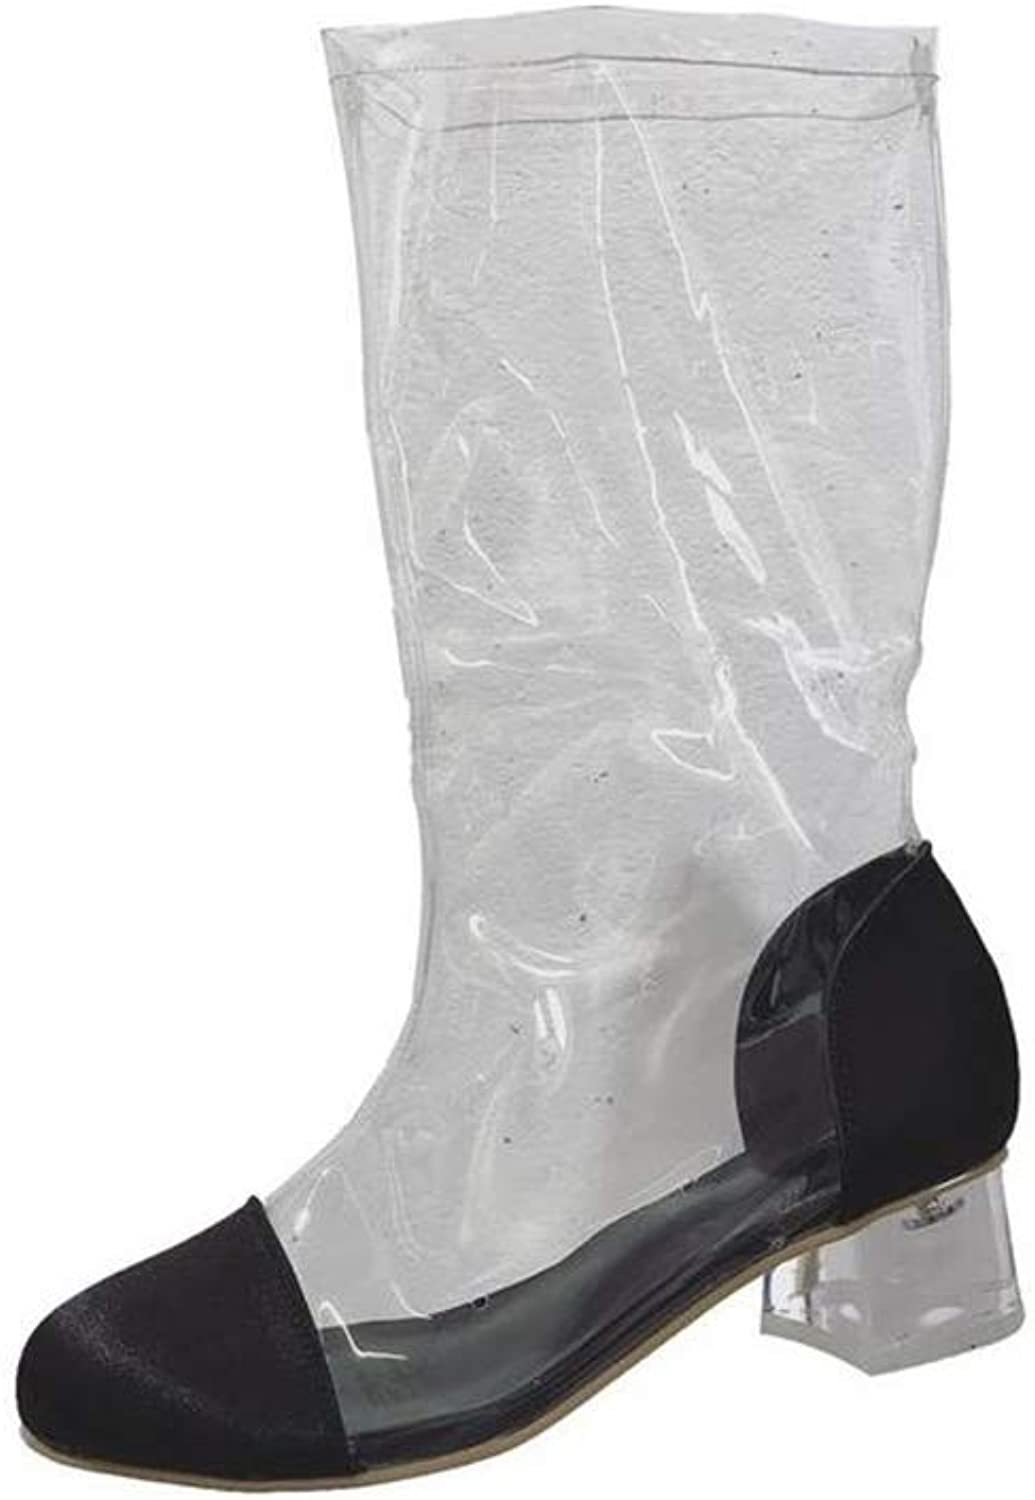 Gusha Transparent Tube Boots Ladies Round Toe Thick Heel Boots Martin Boots